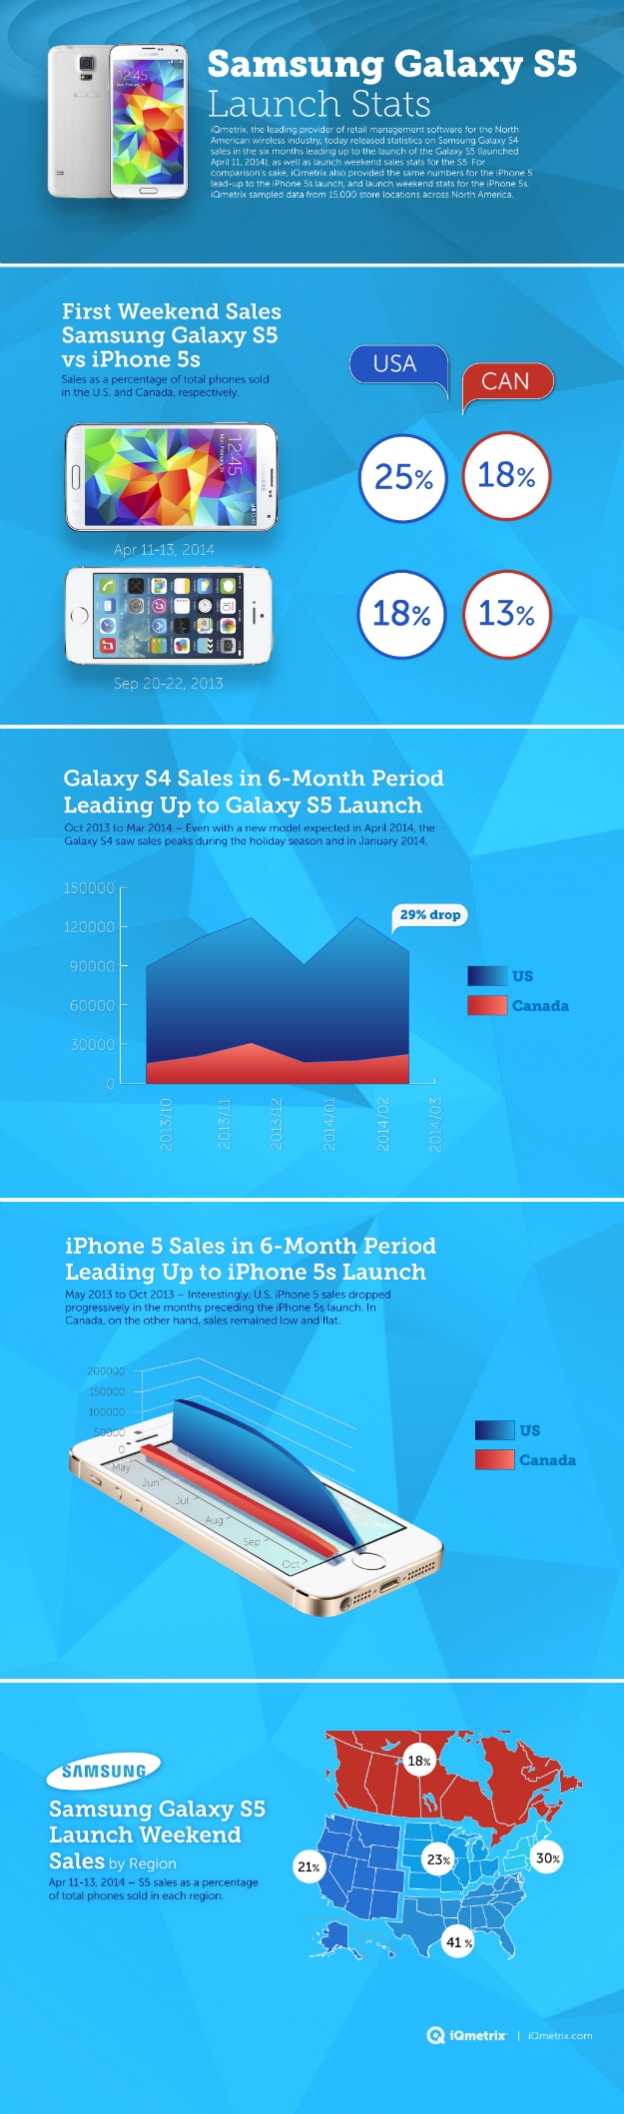 galaxy-s5-vs-iphone-5s-infographic-1